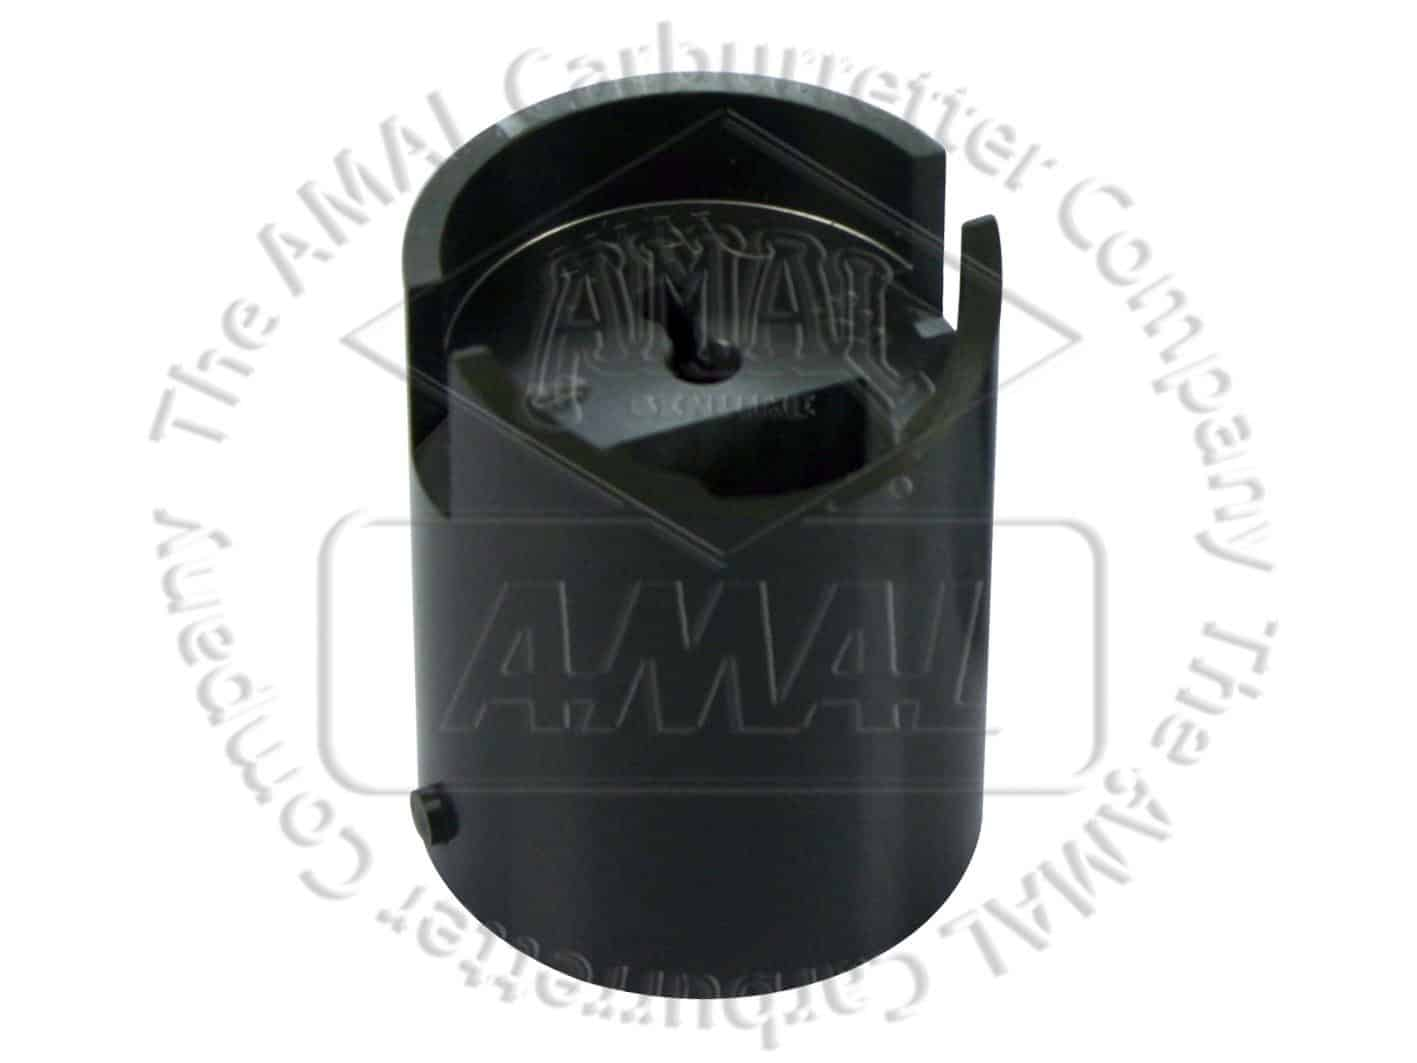 Amal 900 Series carburettor throttle slide